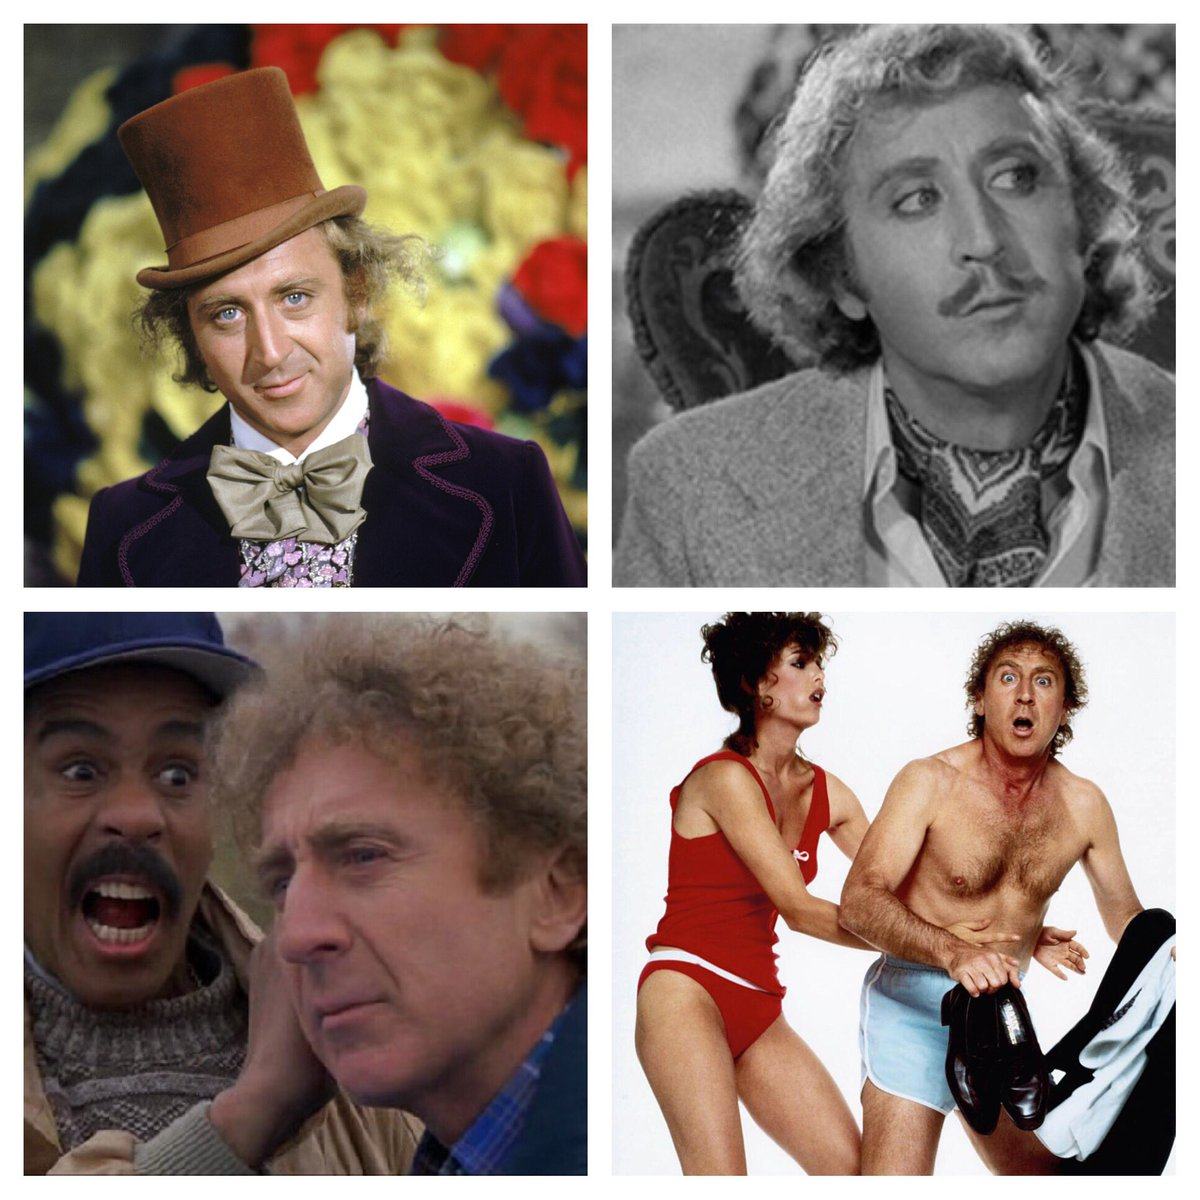 So sad to hear about Gene Wilder. One of my Heroes. Comedic wizard! RIP https://t.co/IDZsC6V7Hs